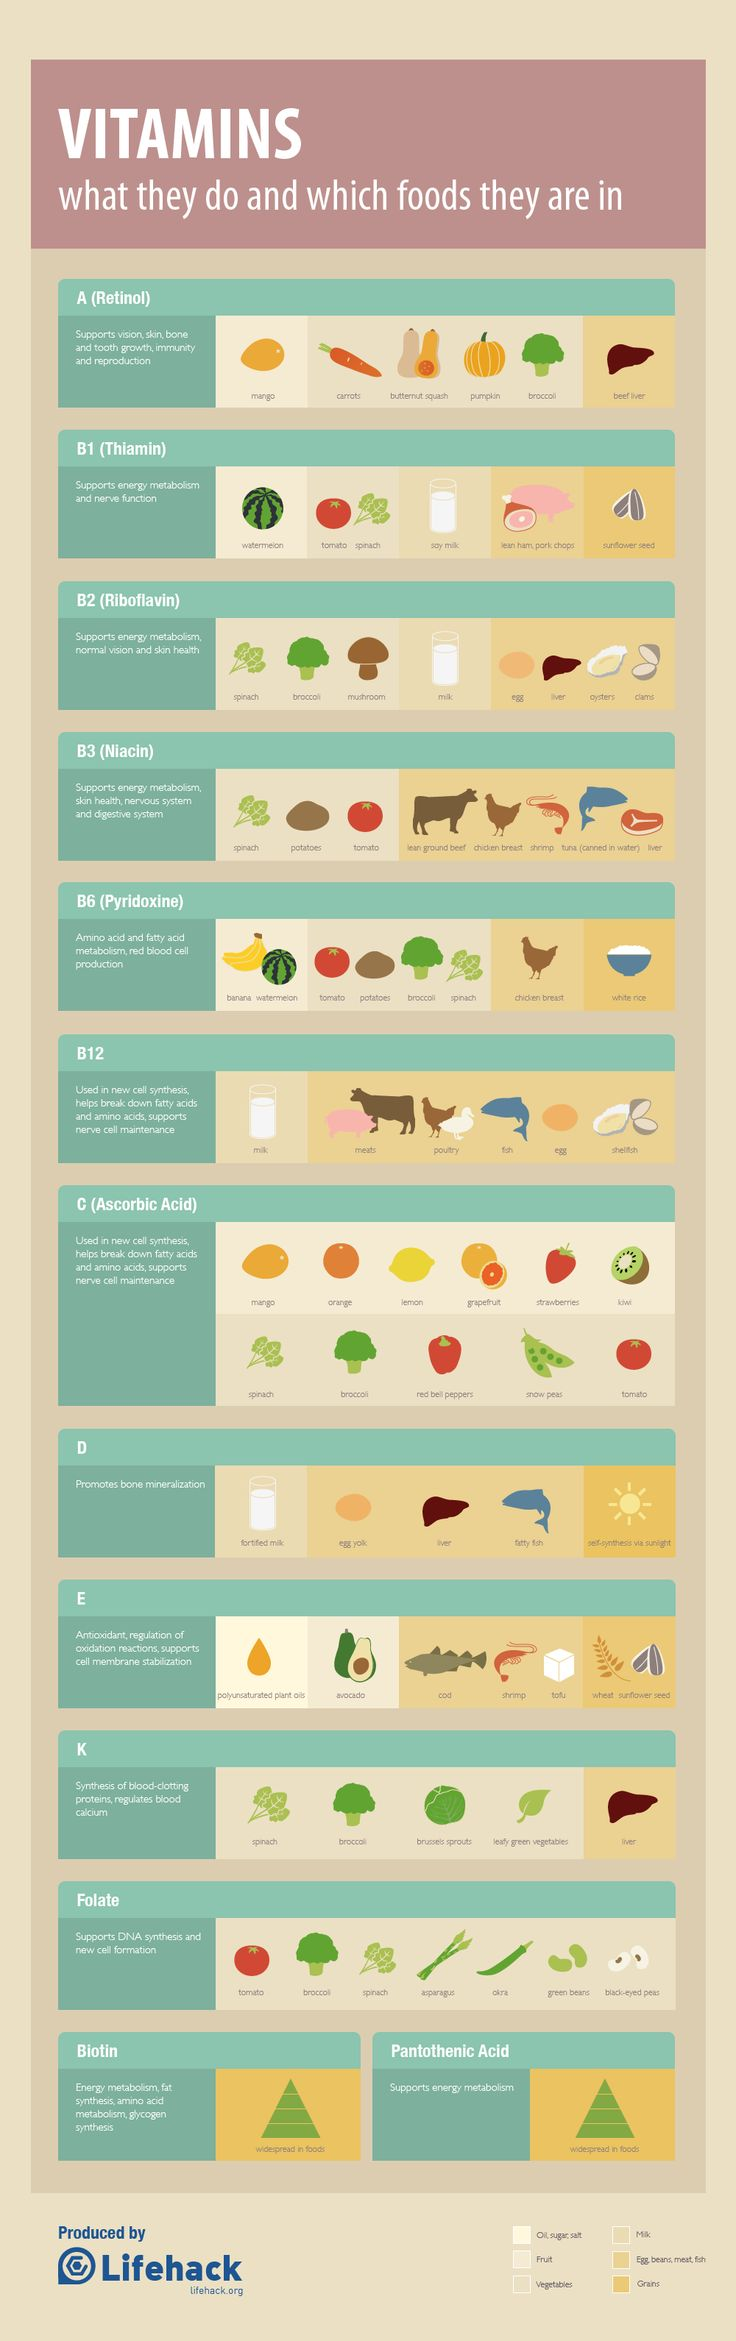 vitamins- what they do and what foods they are in. via sarahdigrazia.com